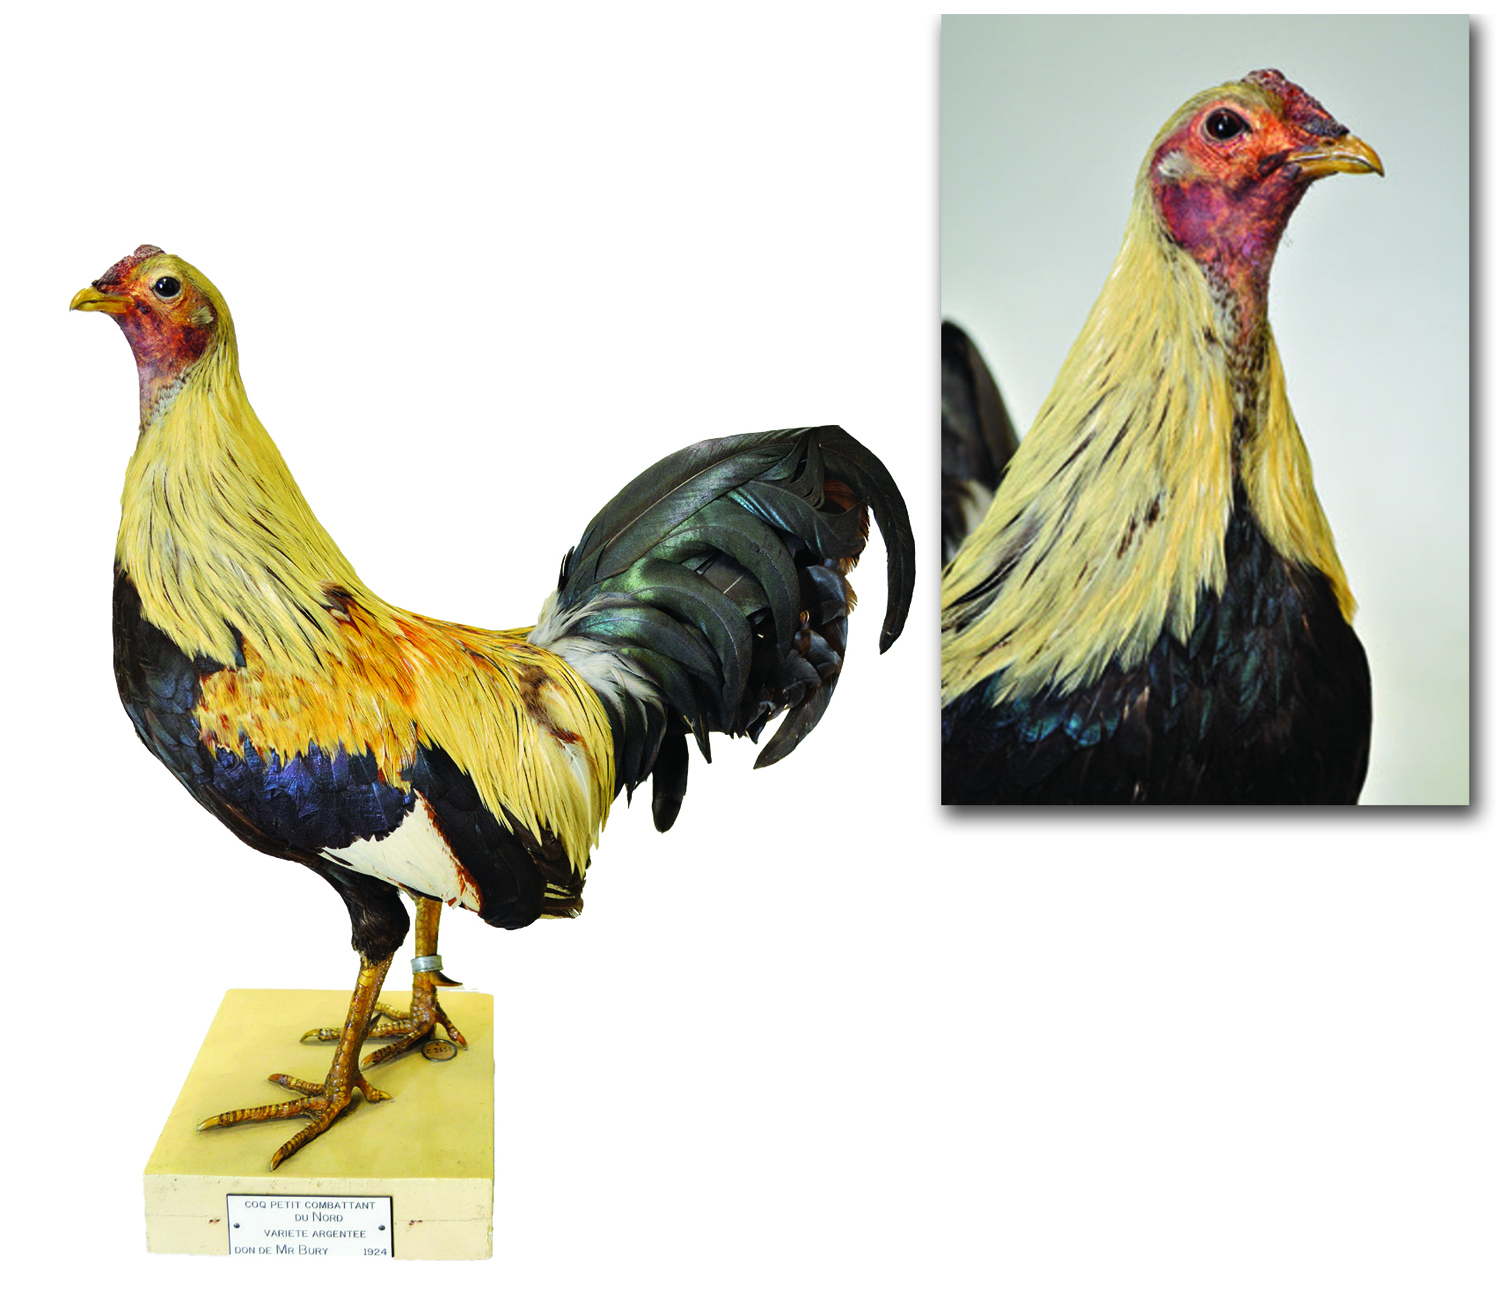 More Continental Poultry Breeds